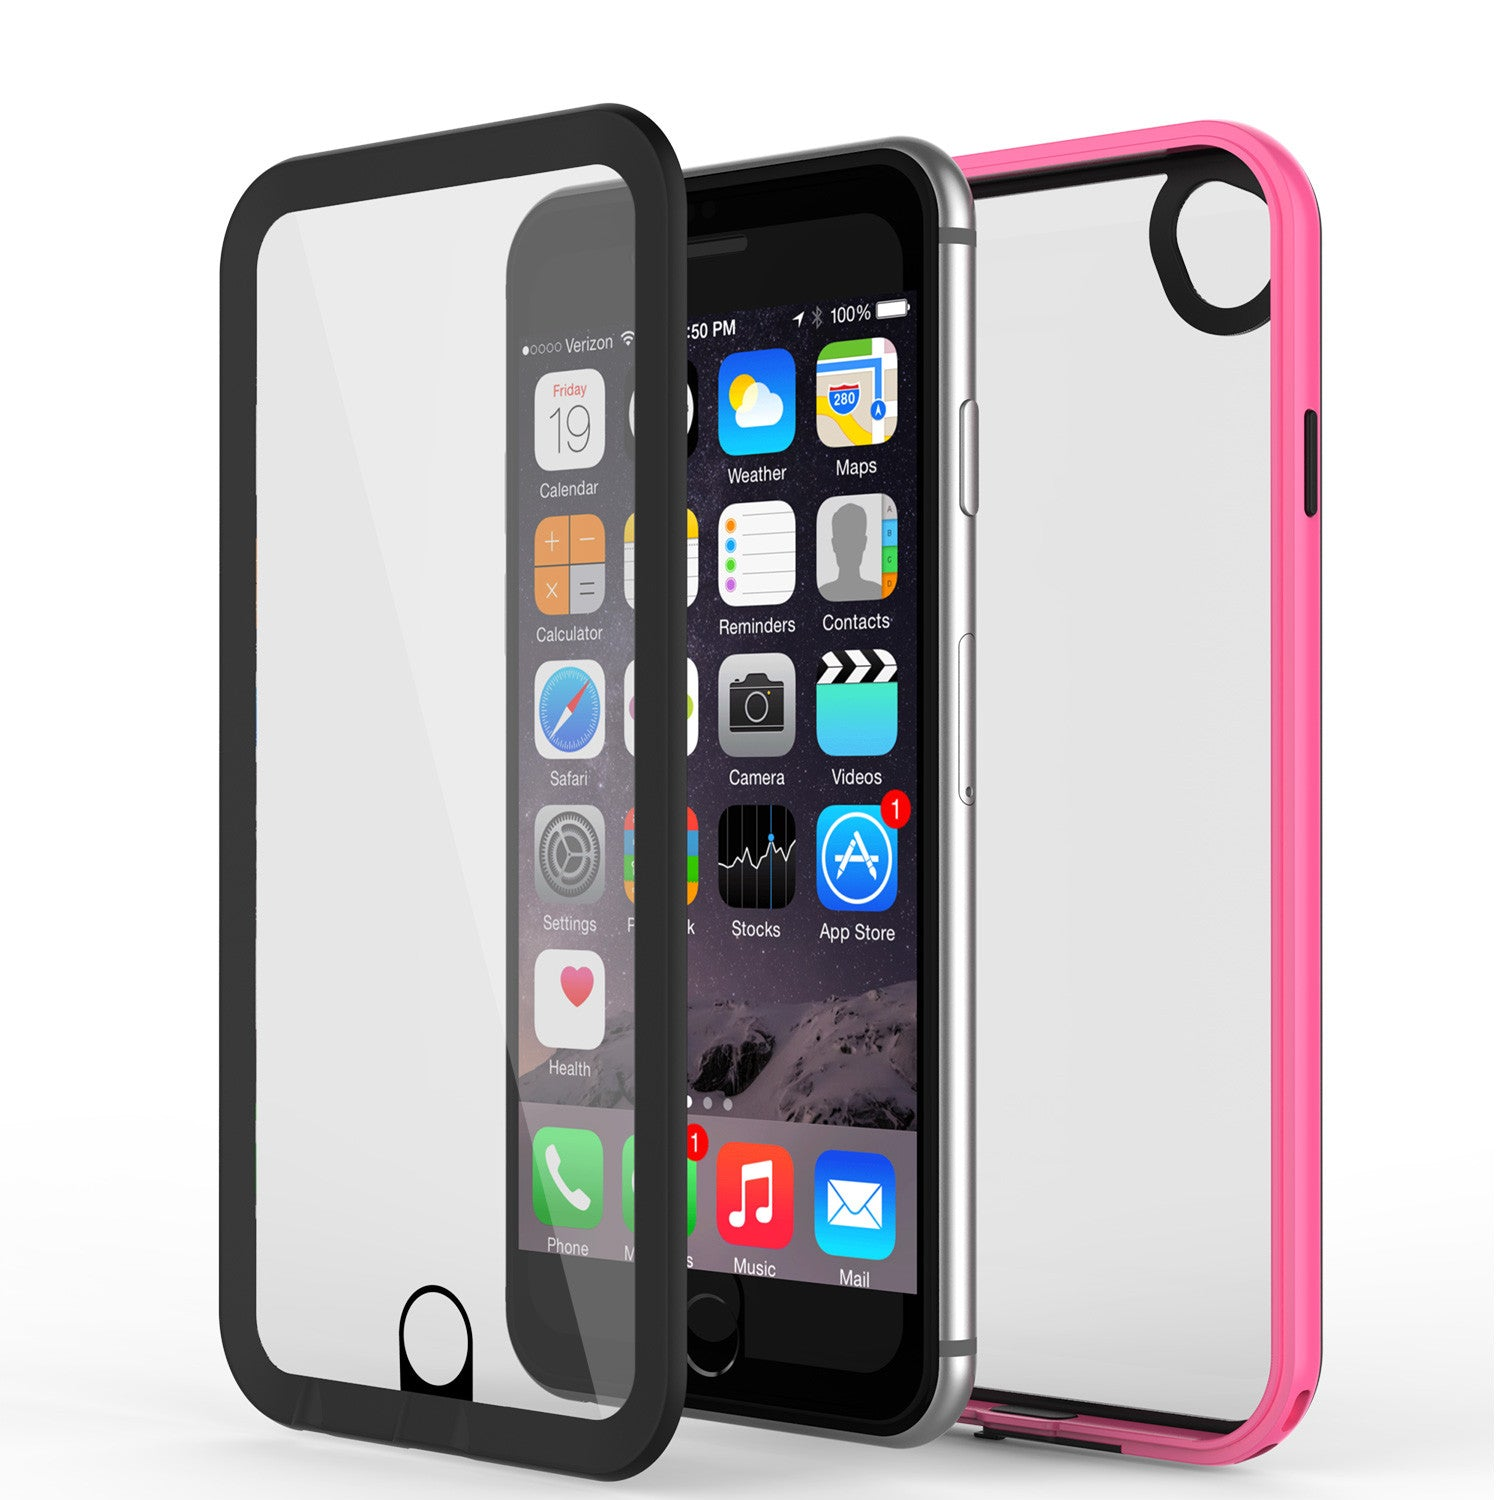 Apple iPhone 7/6s/6 Waterproof Case, PUNKcase CRYSTAL 2.0 Pink W/ Attached Screen Protector  | Warranty